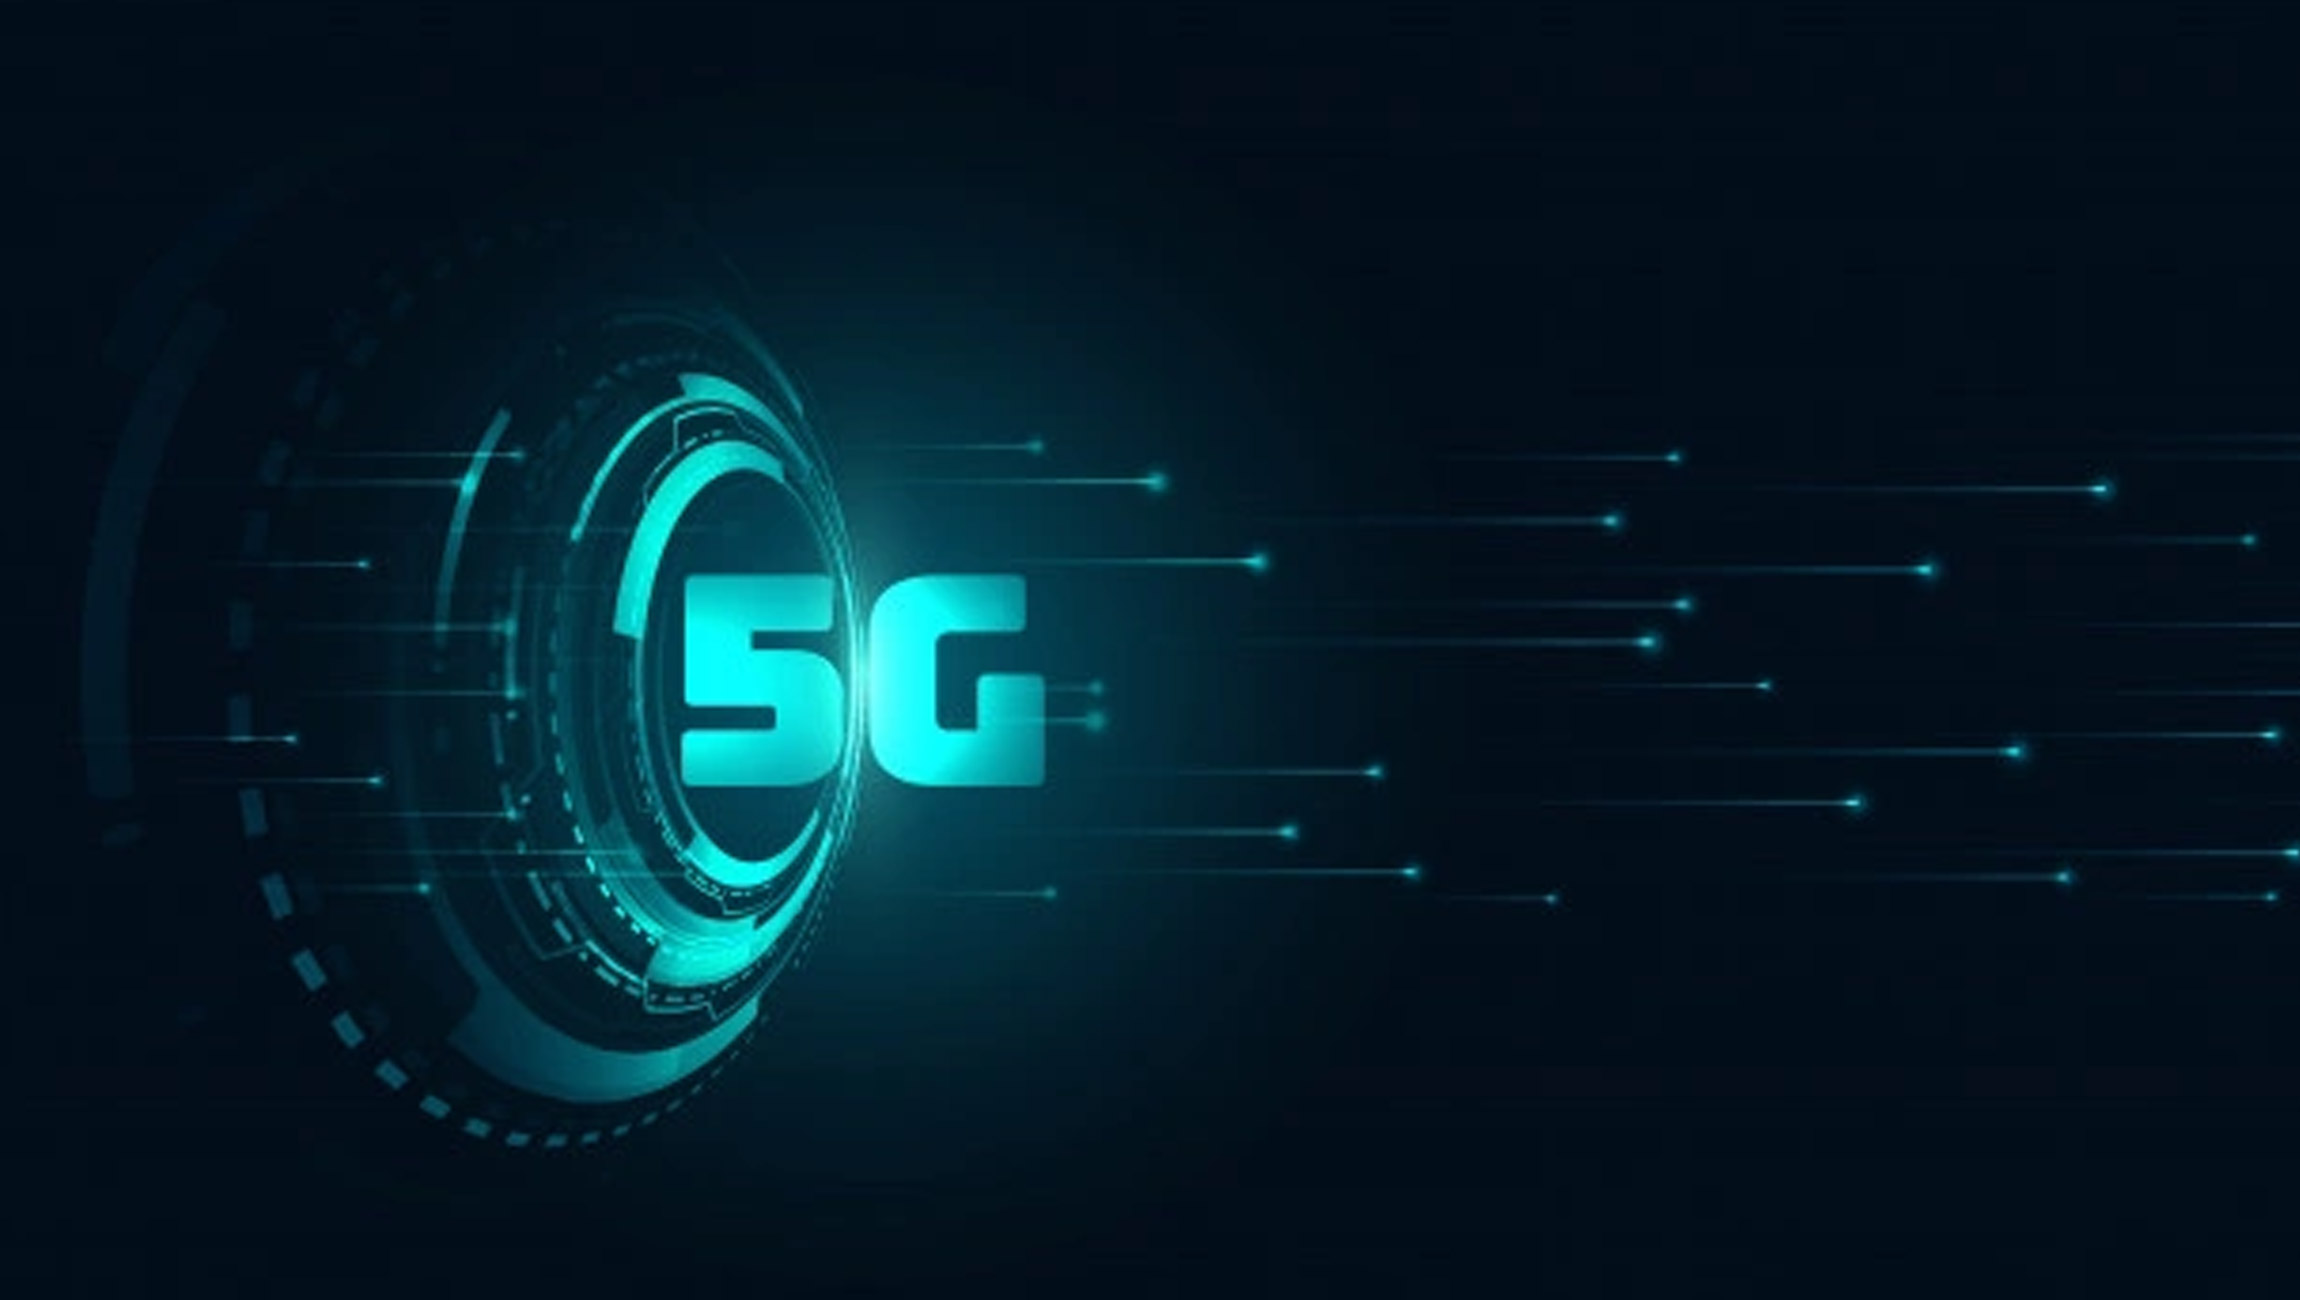 Prodapt to Showcase 5G, Cloud and Customer Experience Thought Leadership at TM Forum's Digital Transformation World Series 2021